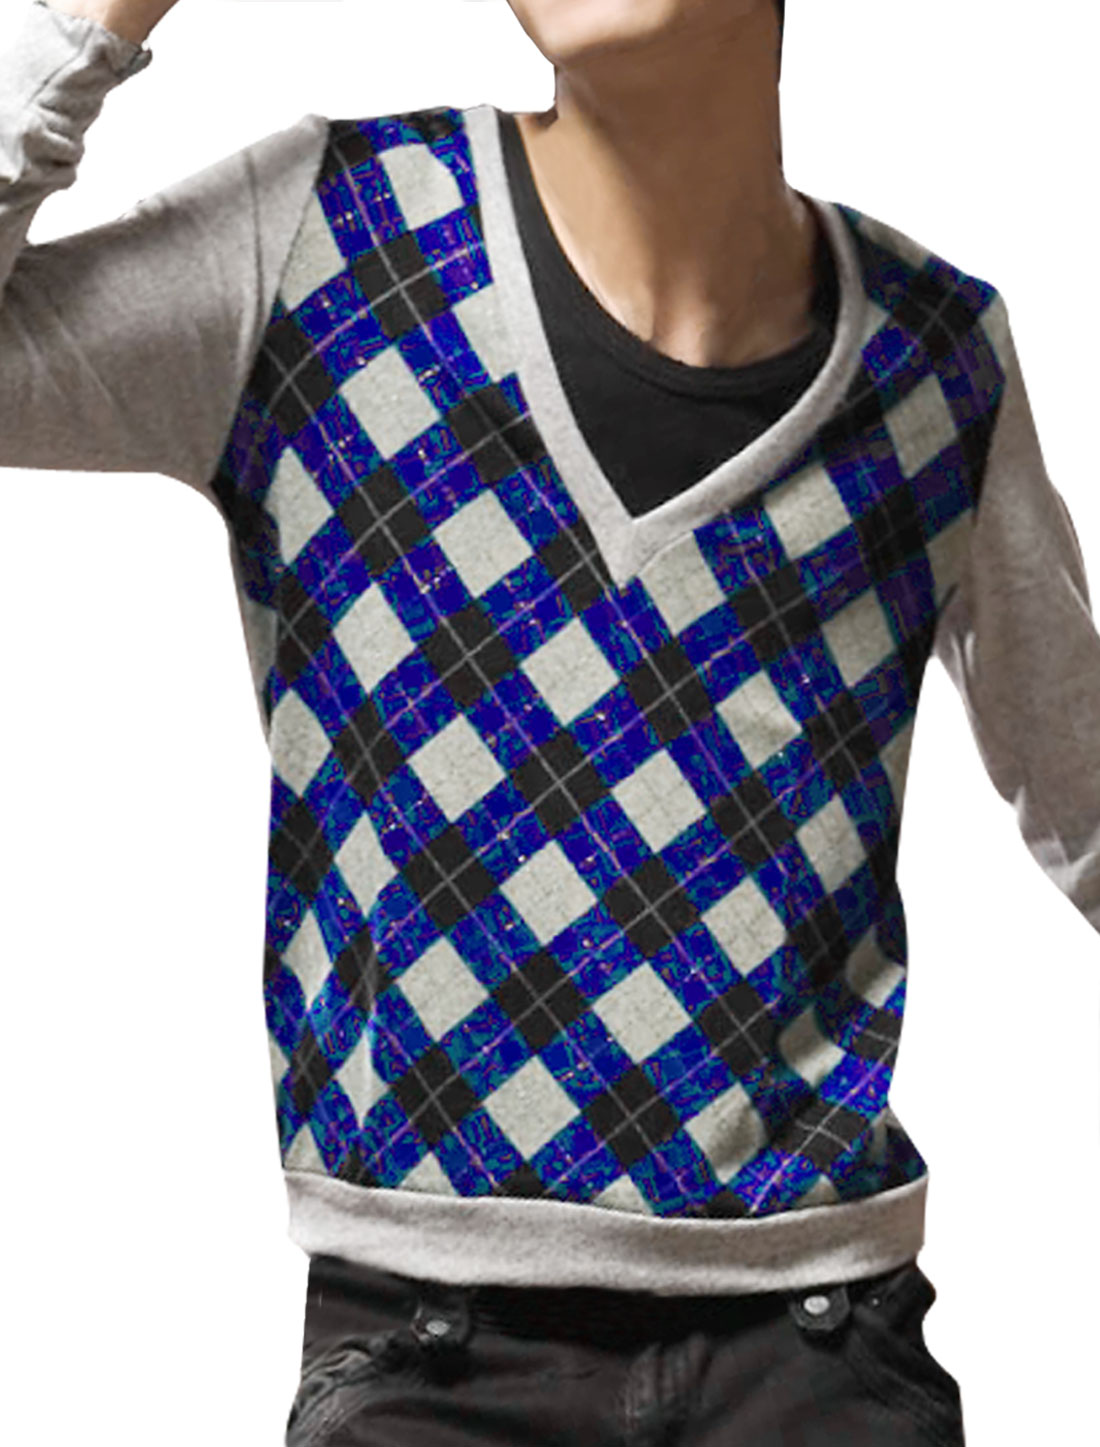 NEW Stylish Mens V-neck Knit Argyle Casual Sweater Shirt Blue XS